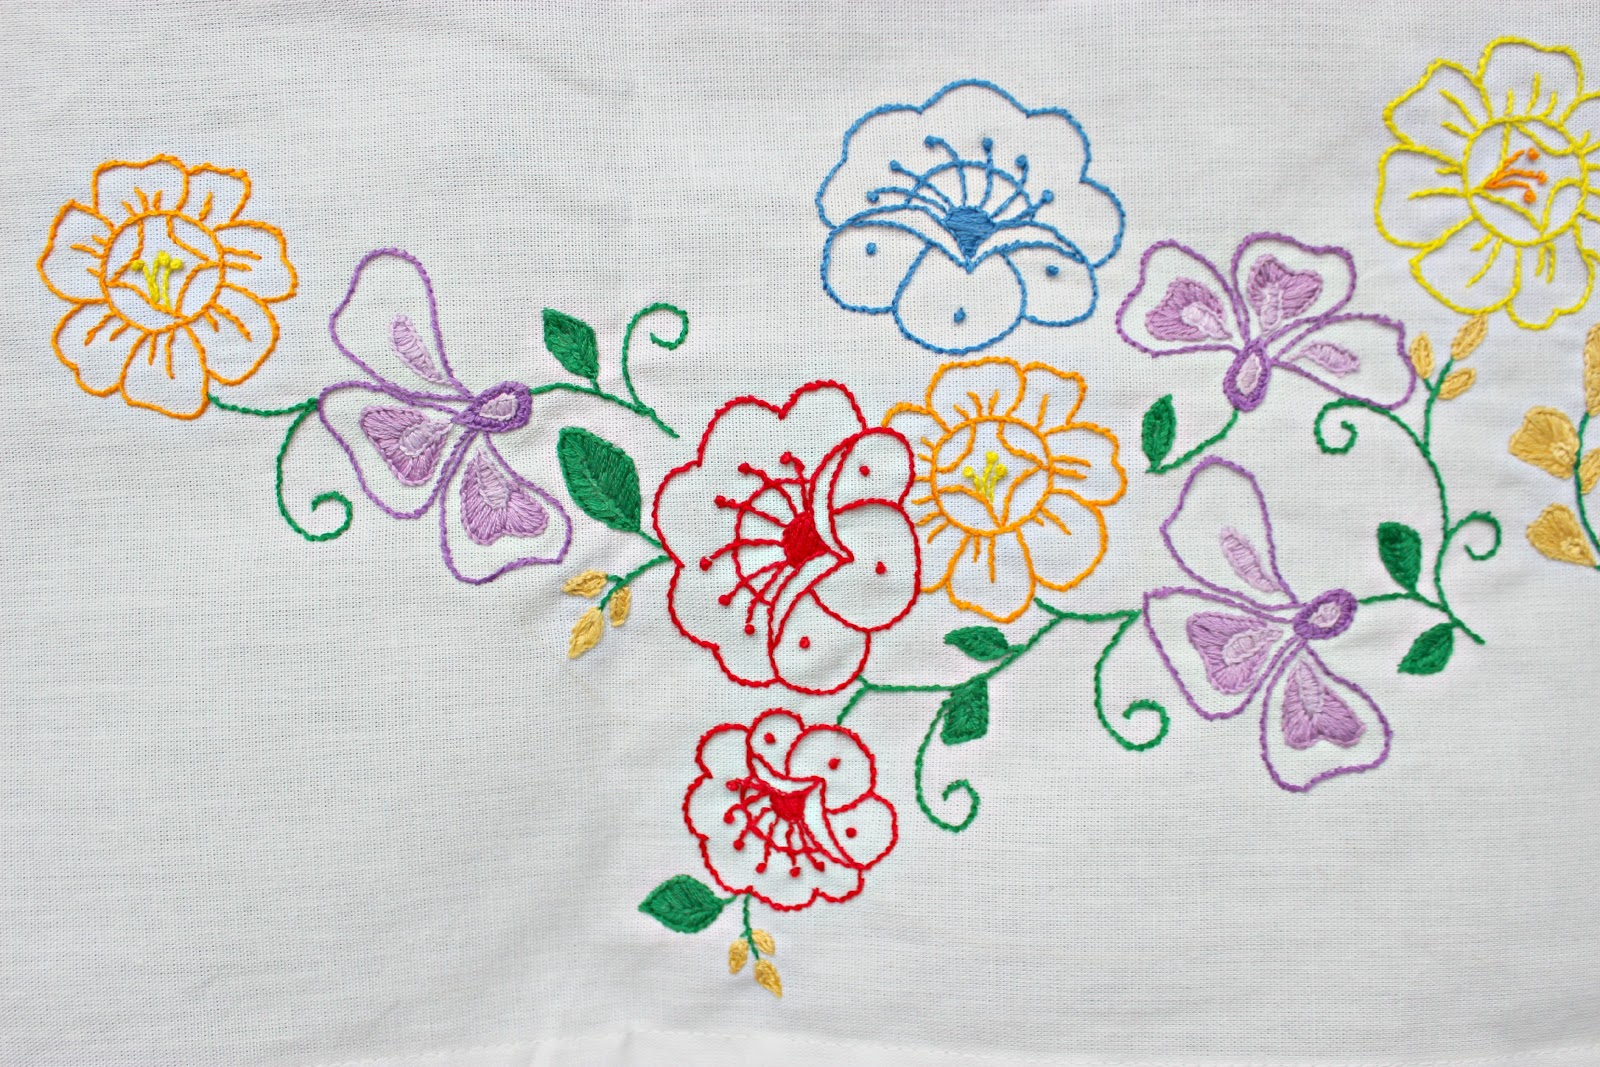 Simple hand embroidery designs for tablecloth - I Found This Design Here And Traced It Onto The Tablecloth With Pencil Then Proceeded To Embroider It All By Hand